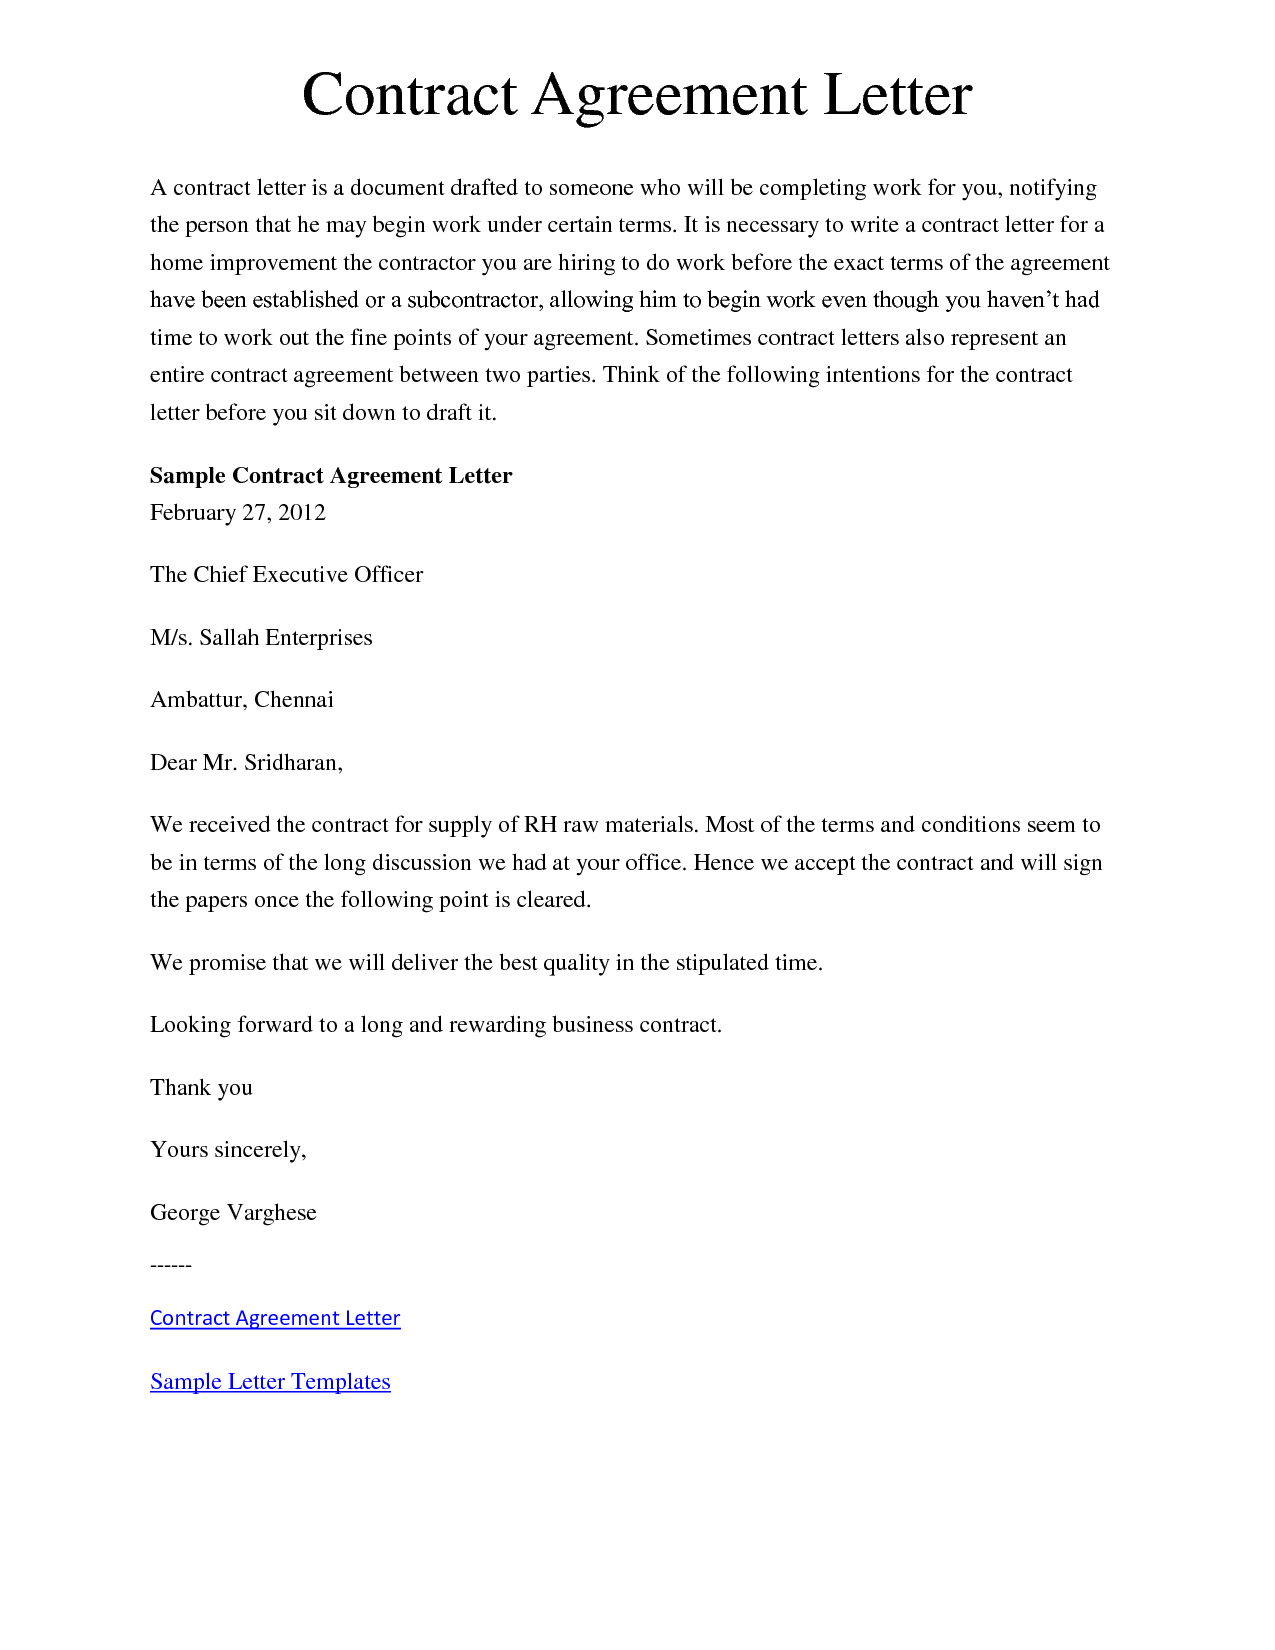 Contract agreement letter gtld world congress contract letter eczalinf altavistaventures Choice Image